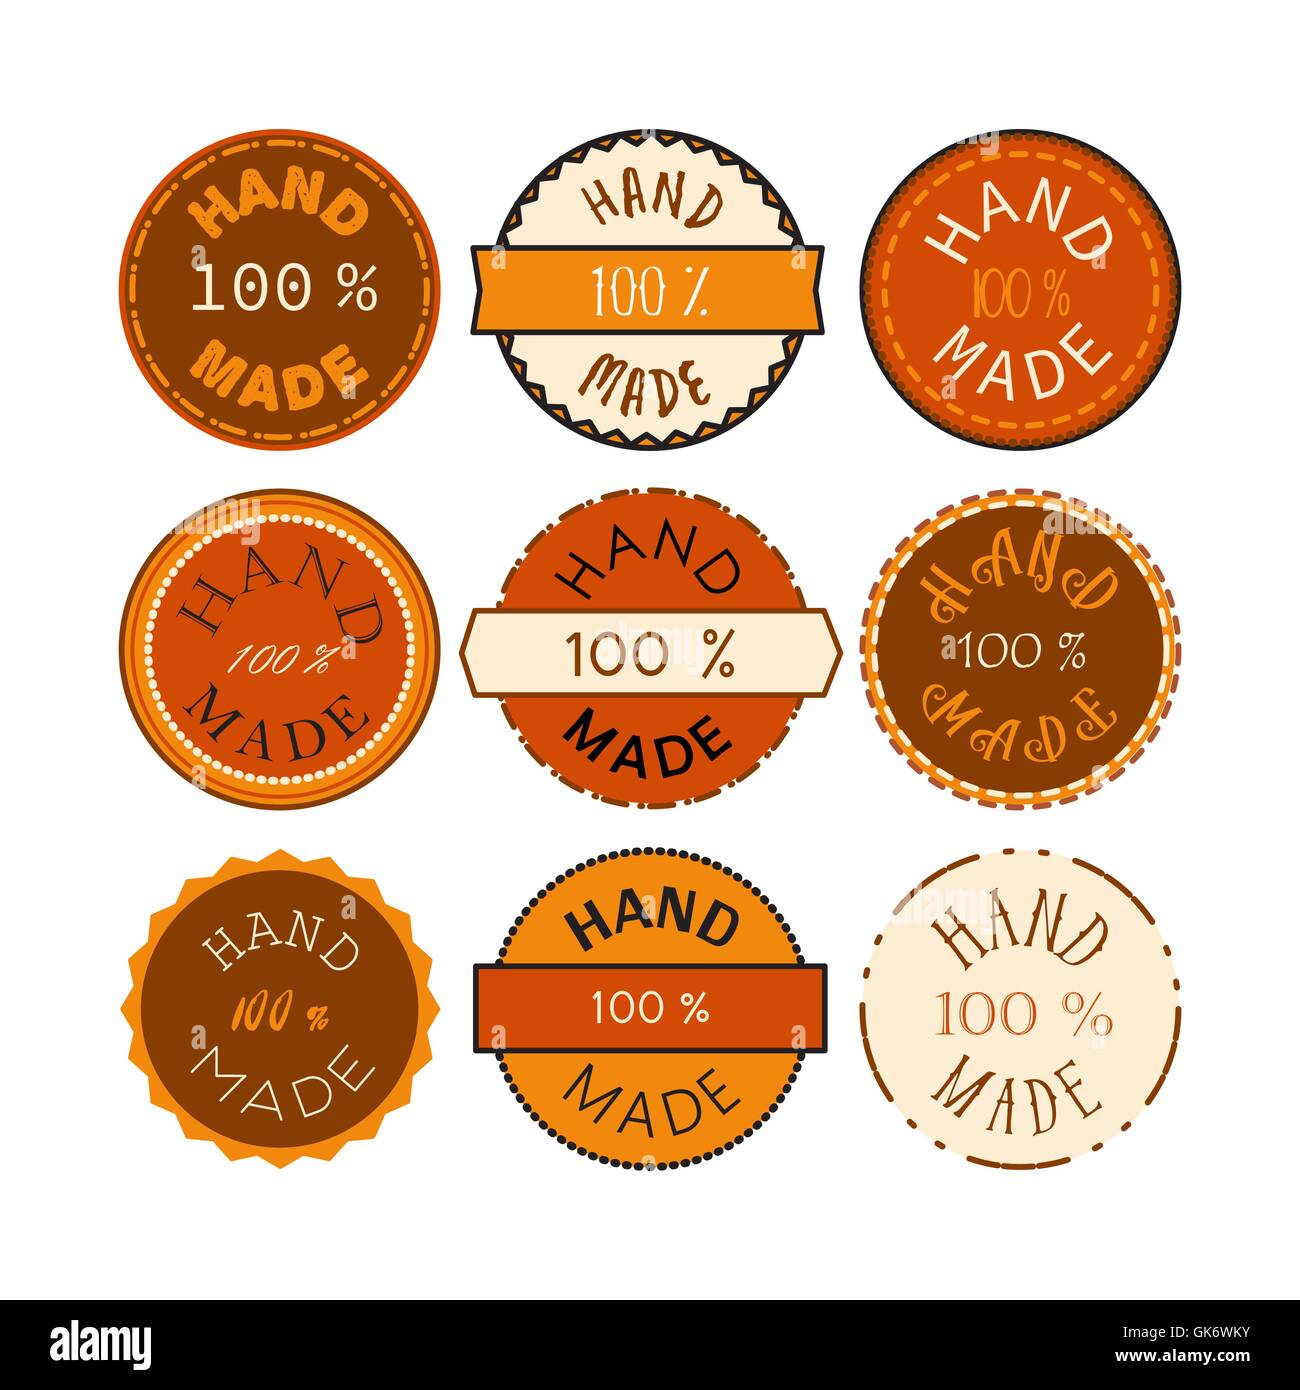 Badge Template With 100 Handmade Product Symbol Vintage Sticker